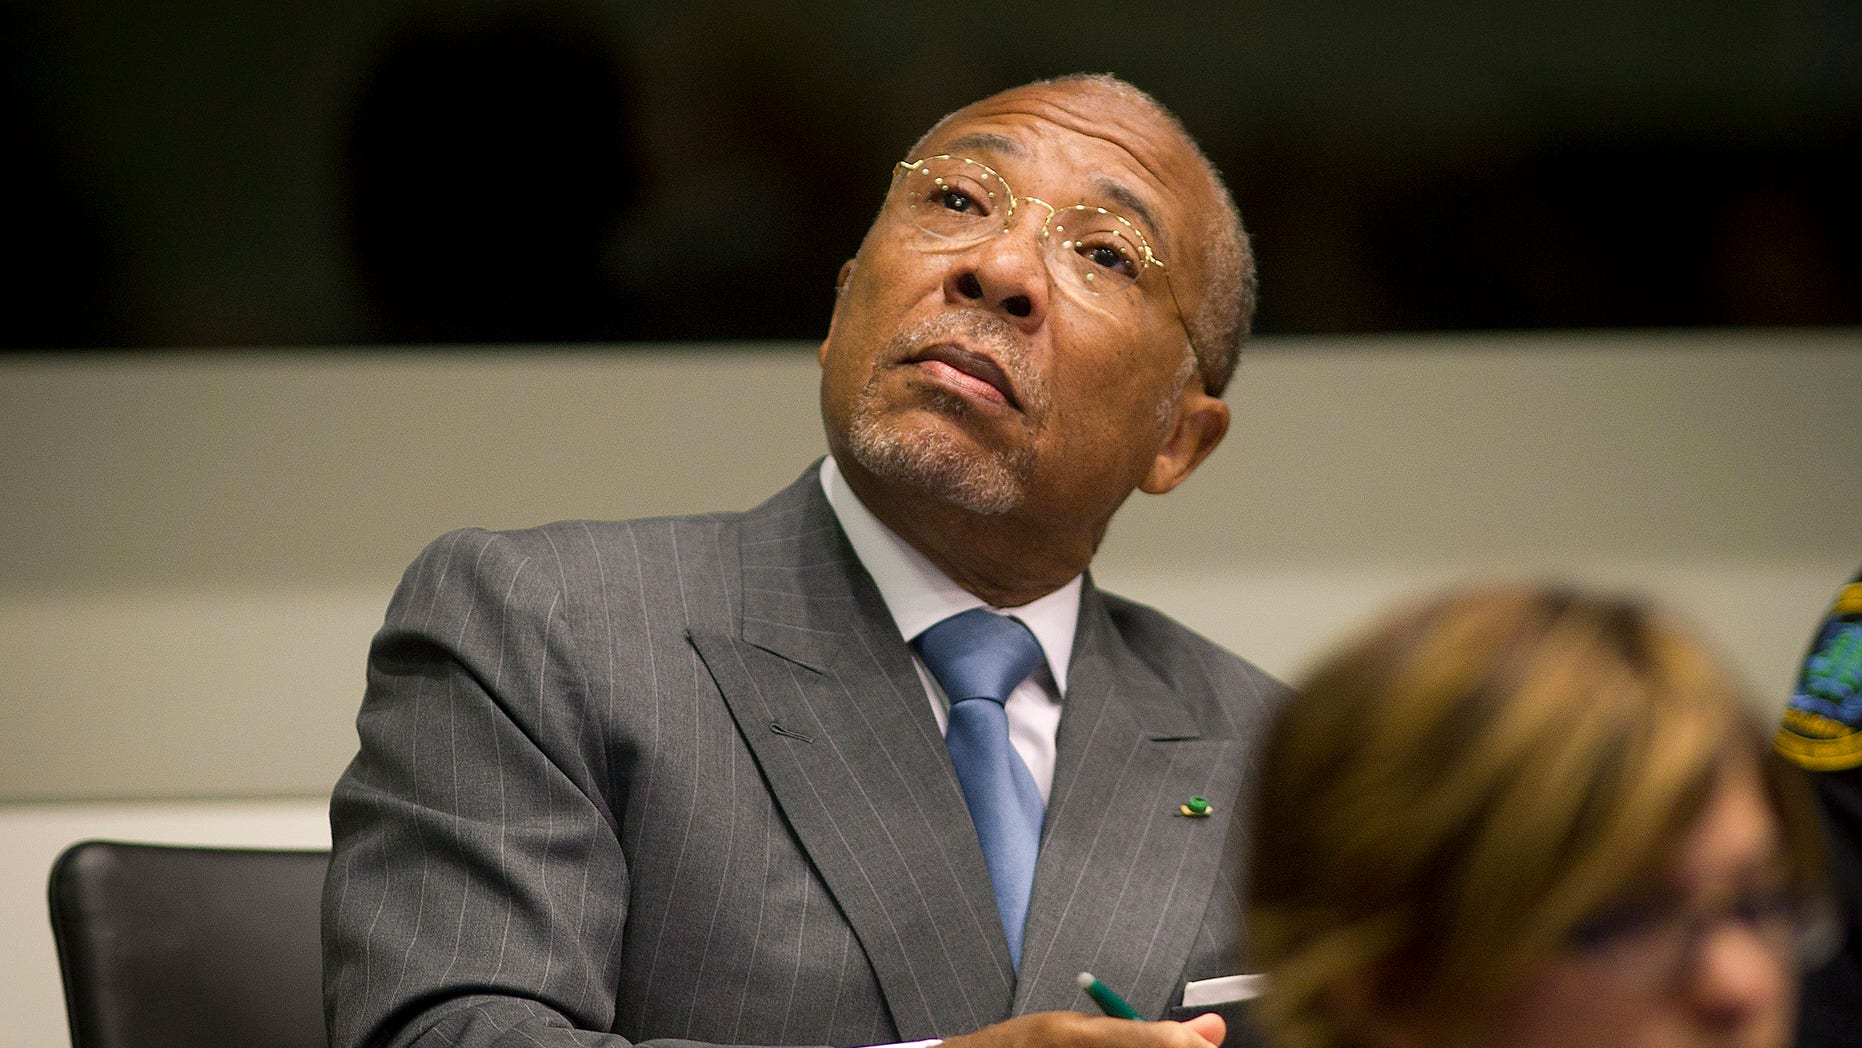 May 16, 2012: Former Liberian President Charles Taylor looks up to the public gallery as he waits for the start of his sentencing hearing in Leidschendam, near The Hague, Netherlands.